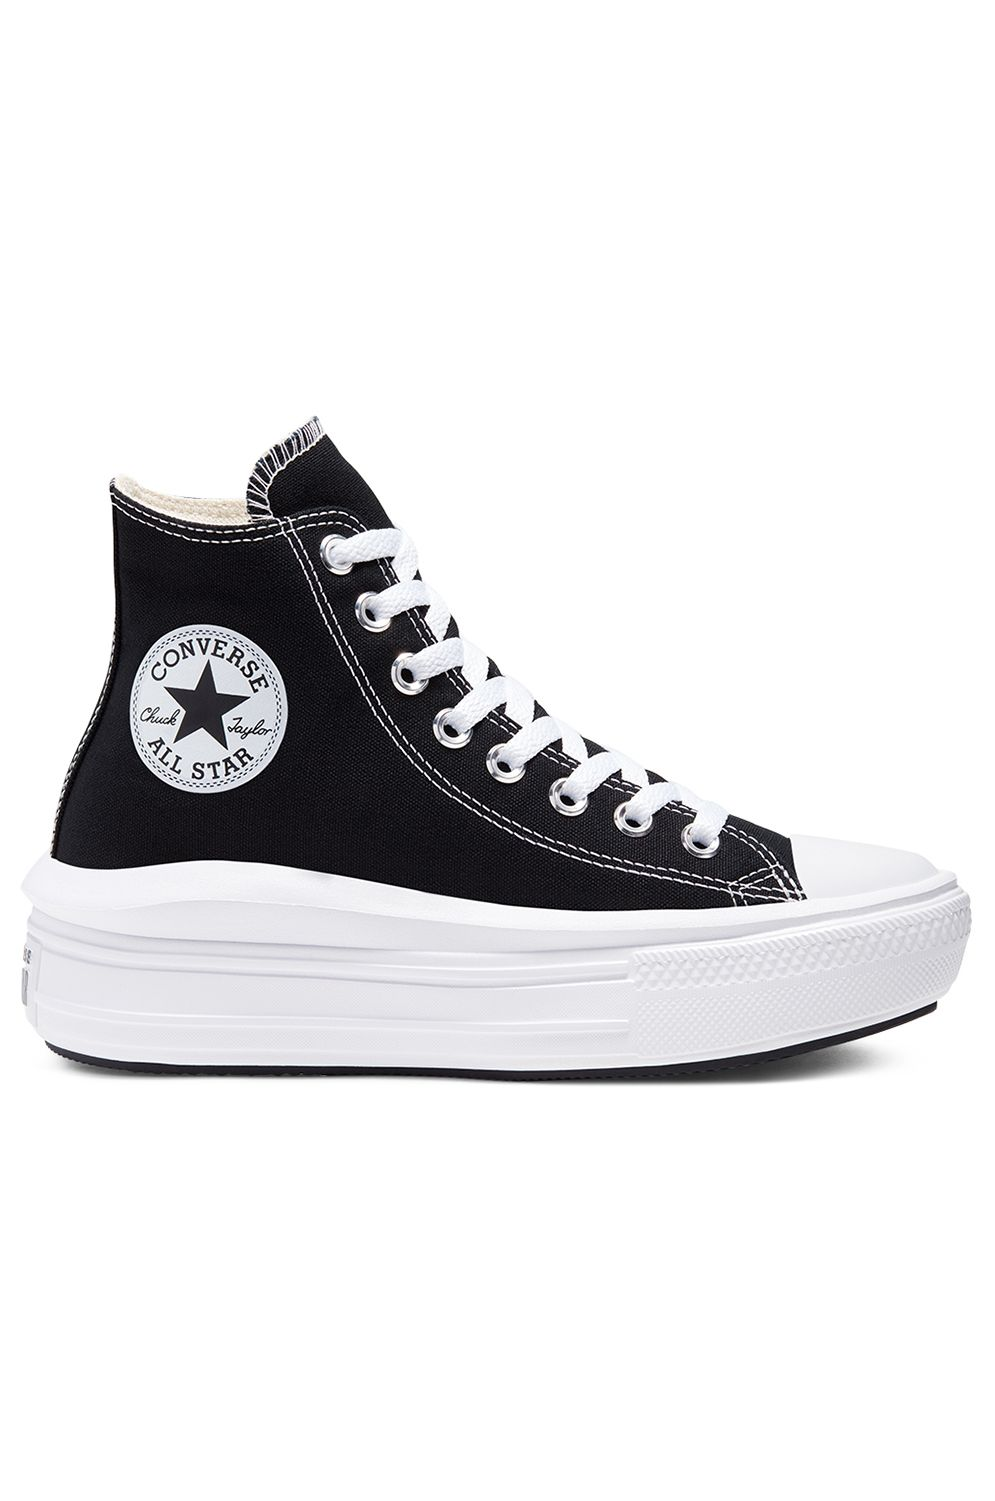 Tenis Converse CHUCK TAYLOR ALL STAR MOVE HI Black/Natural Ivory/White